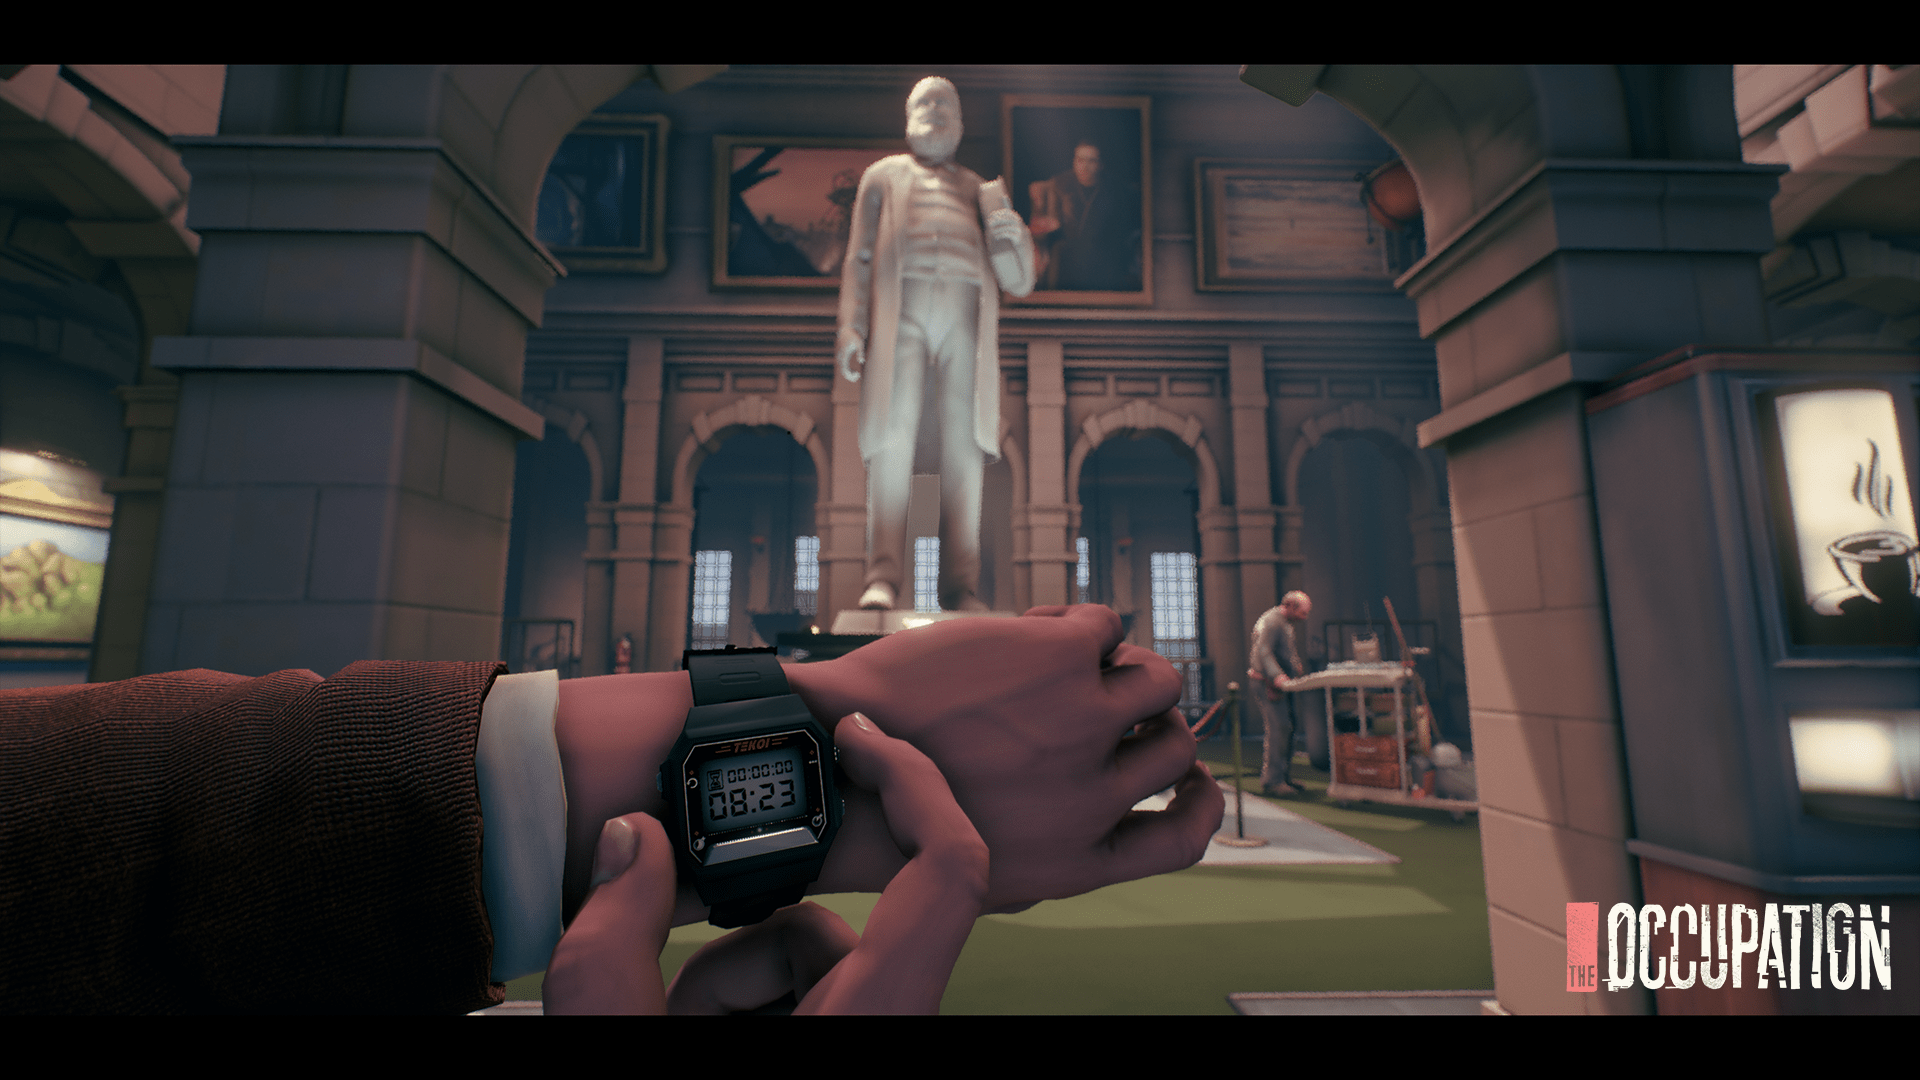 The Occupation (PS4) Review: No wasted motion